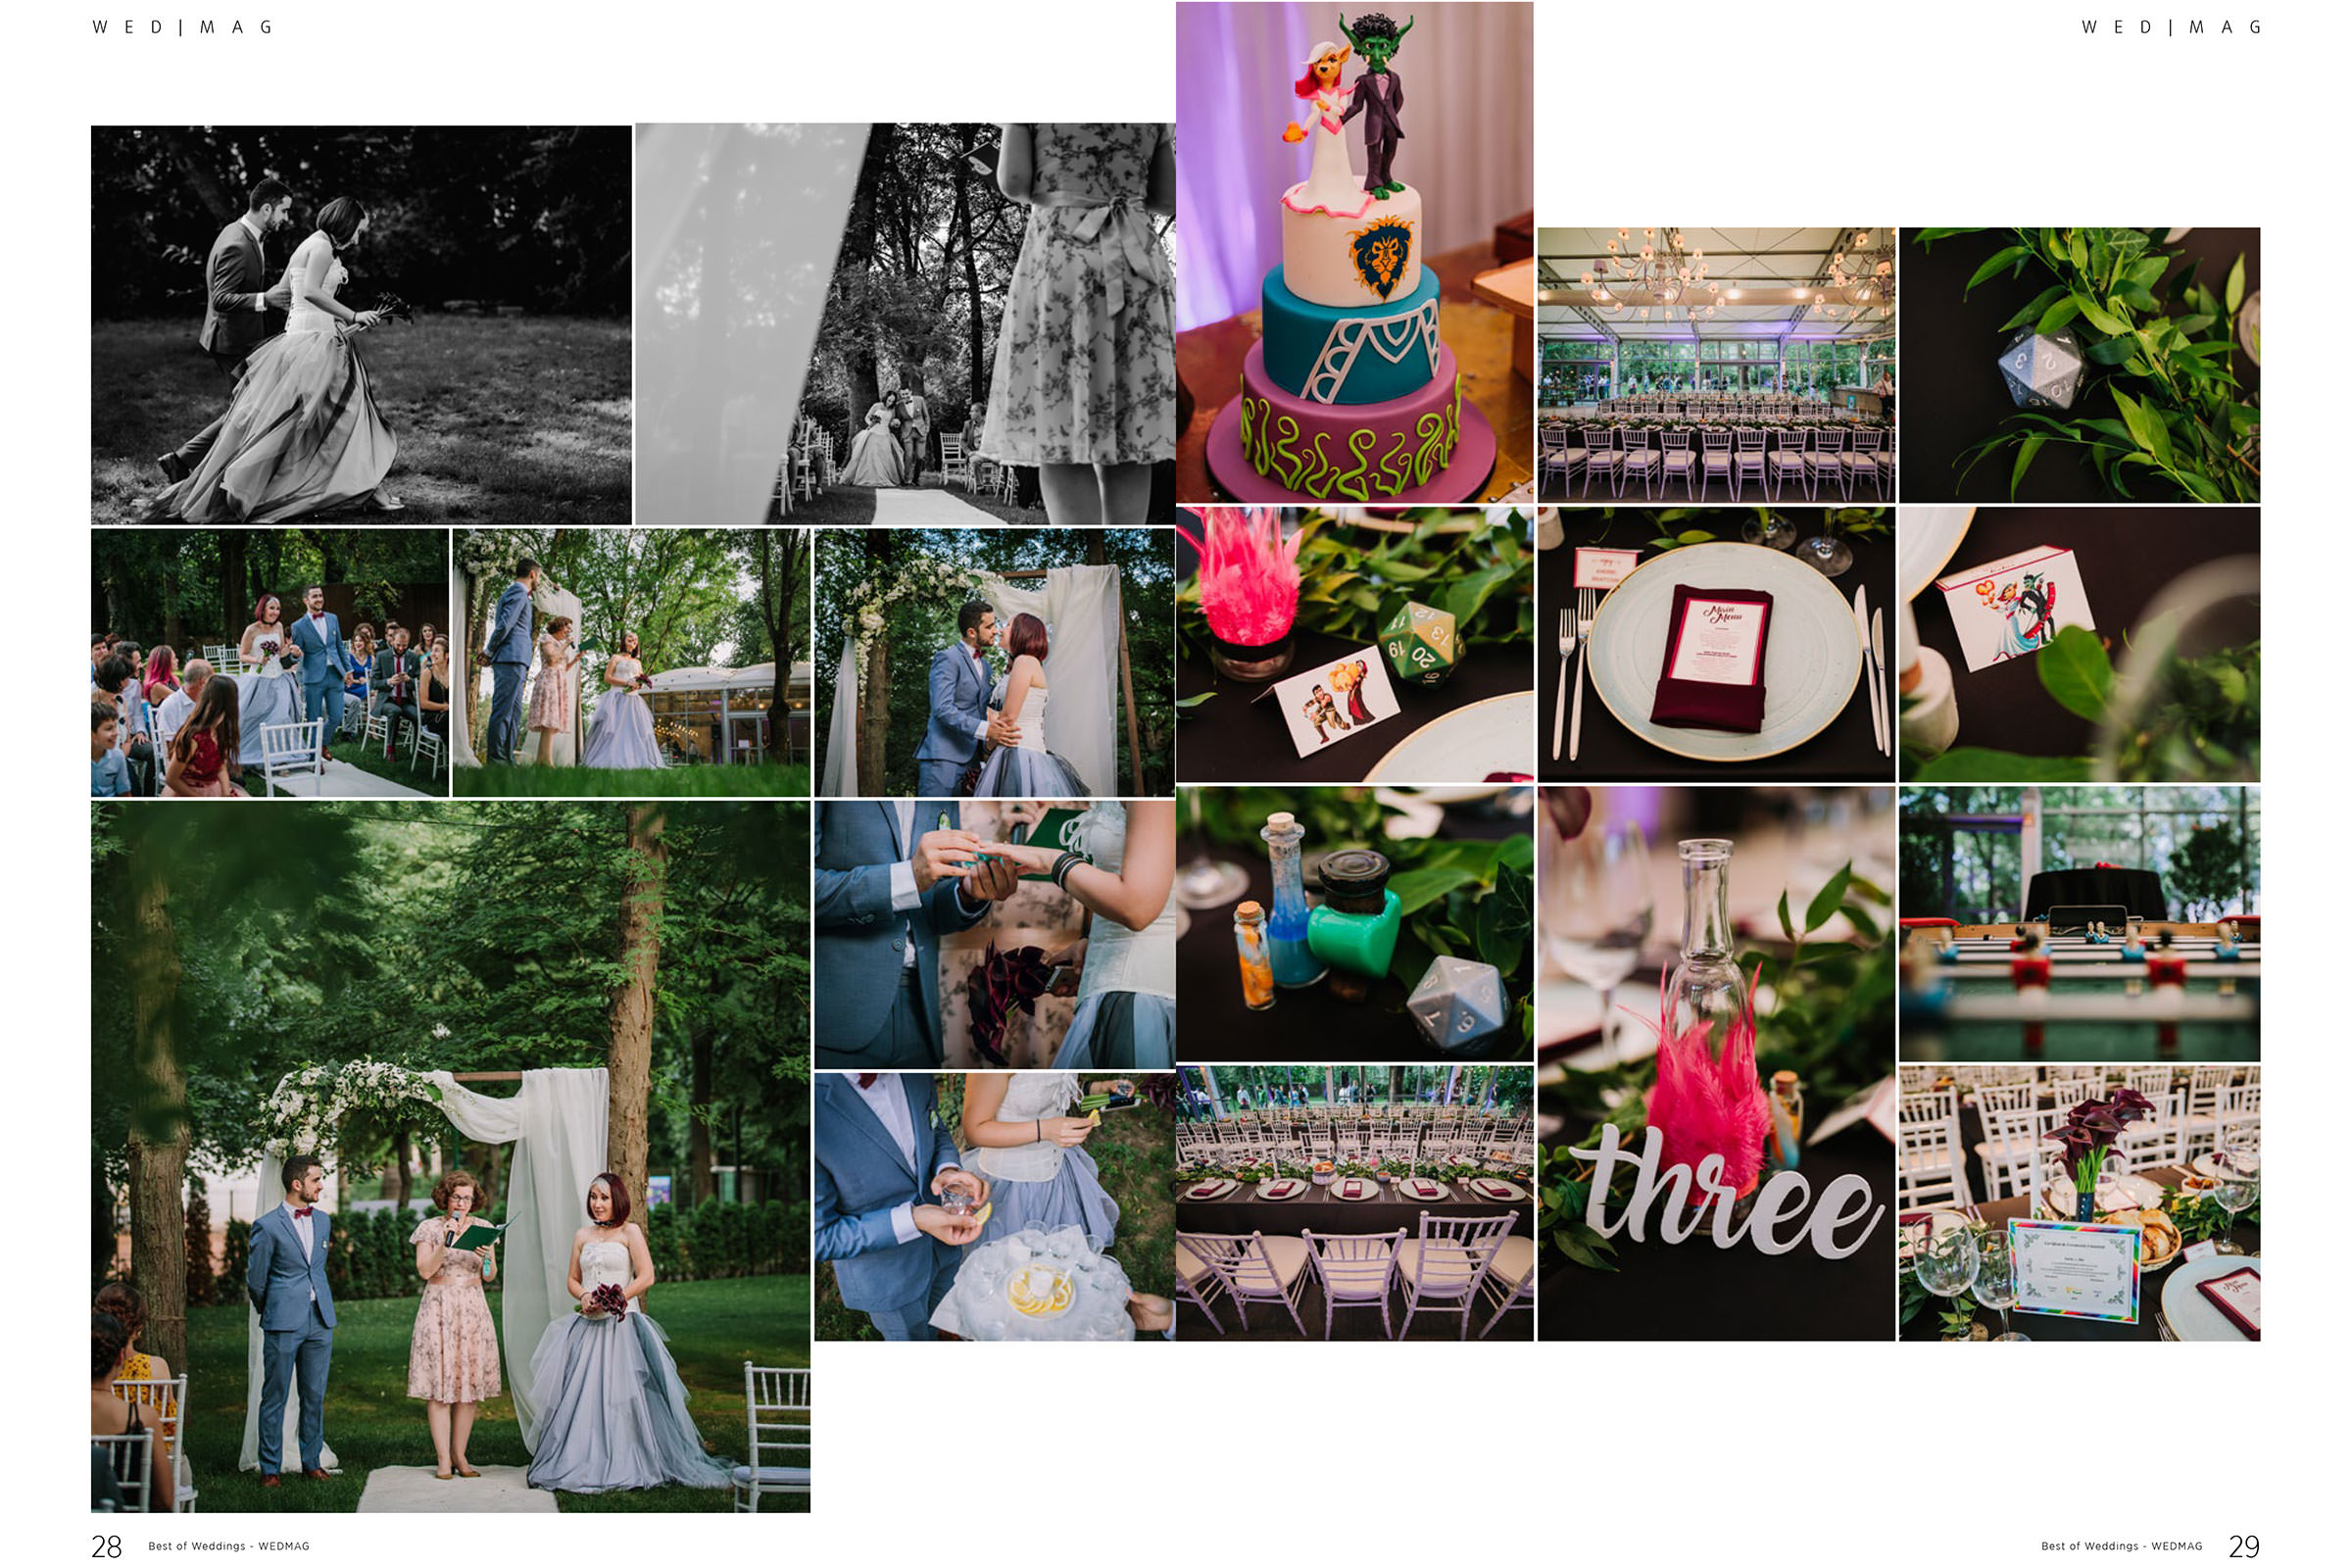 cromatica in best of weddings 2019 04